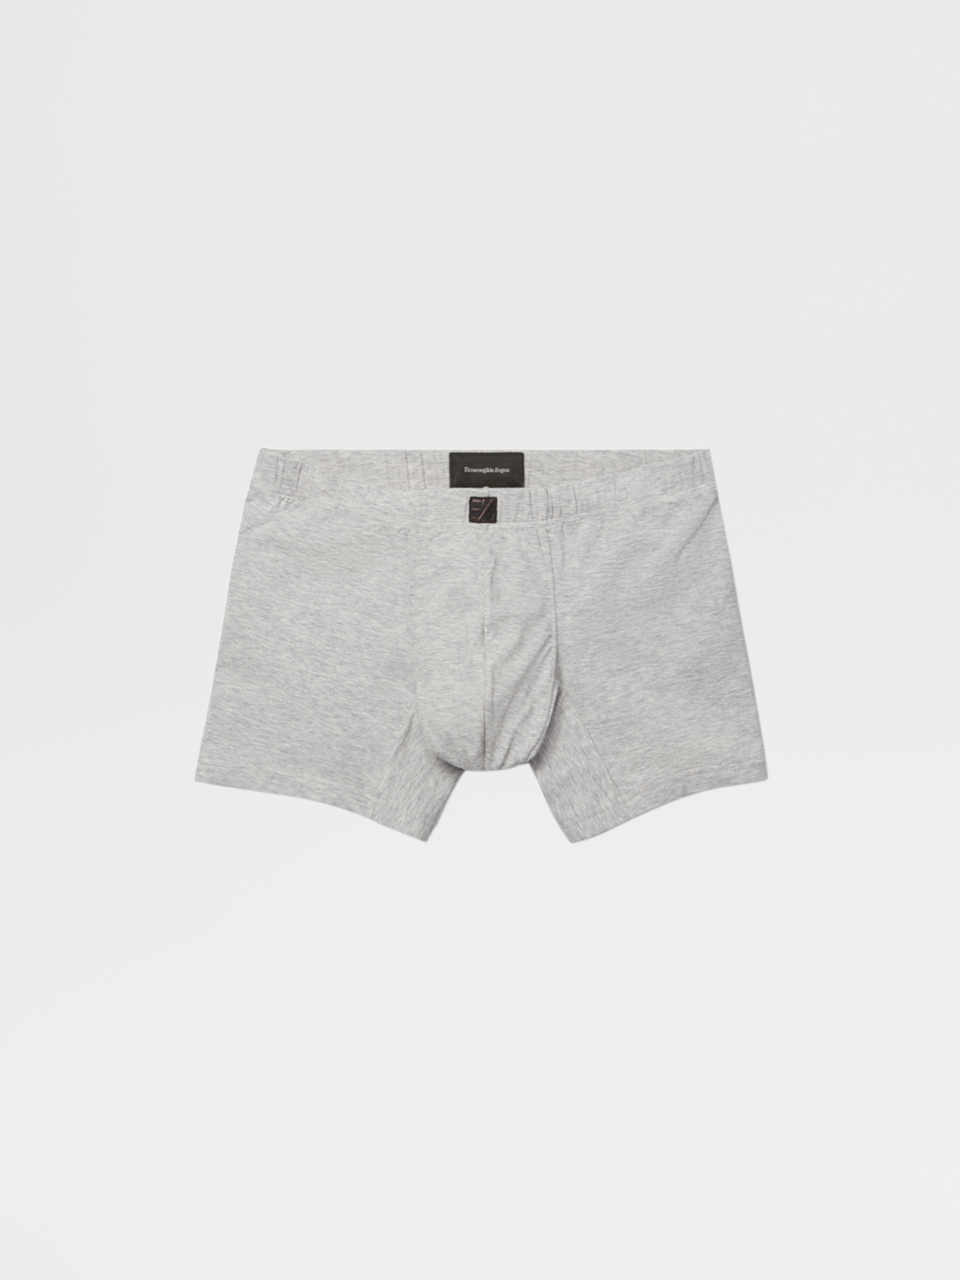 Grey Mélange Stretch Cotton Boxer